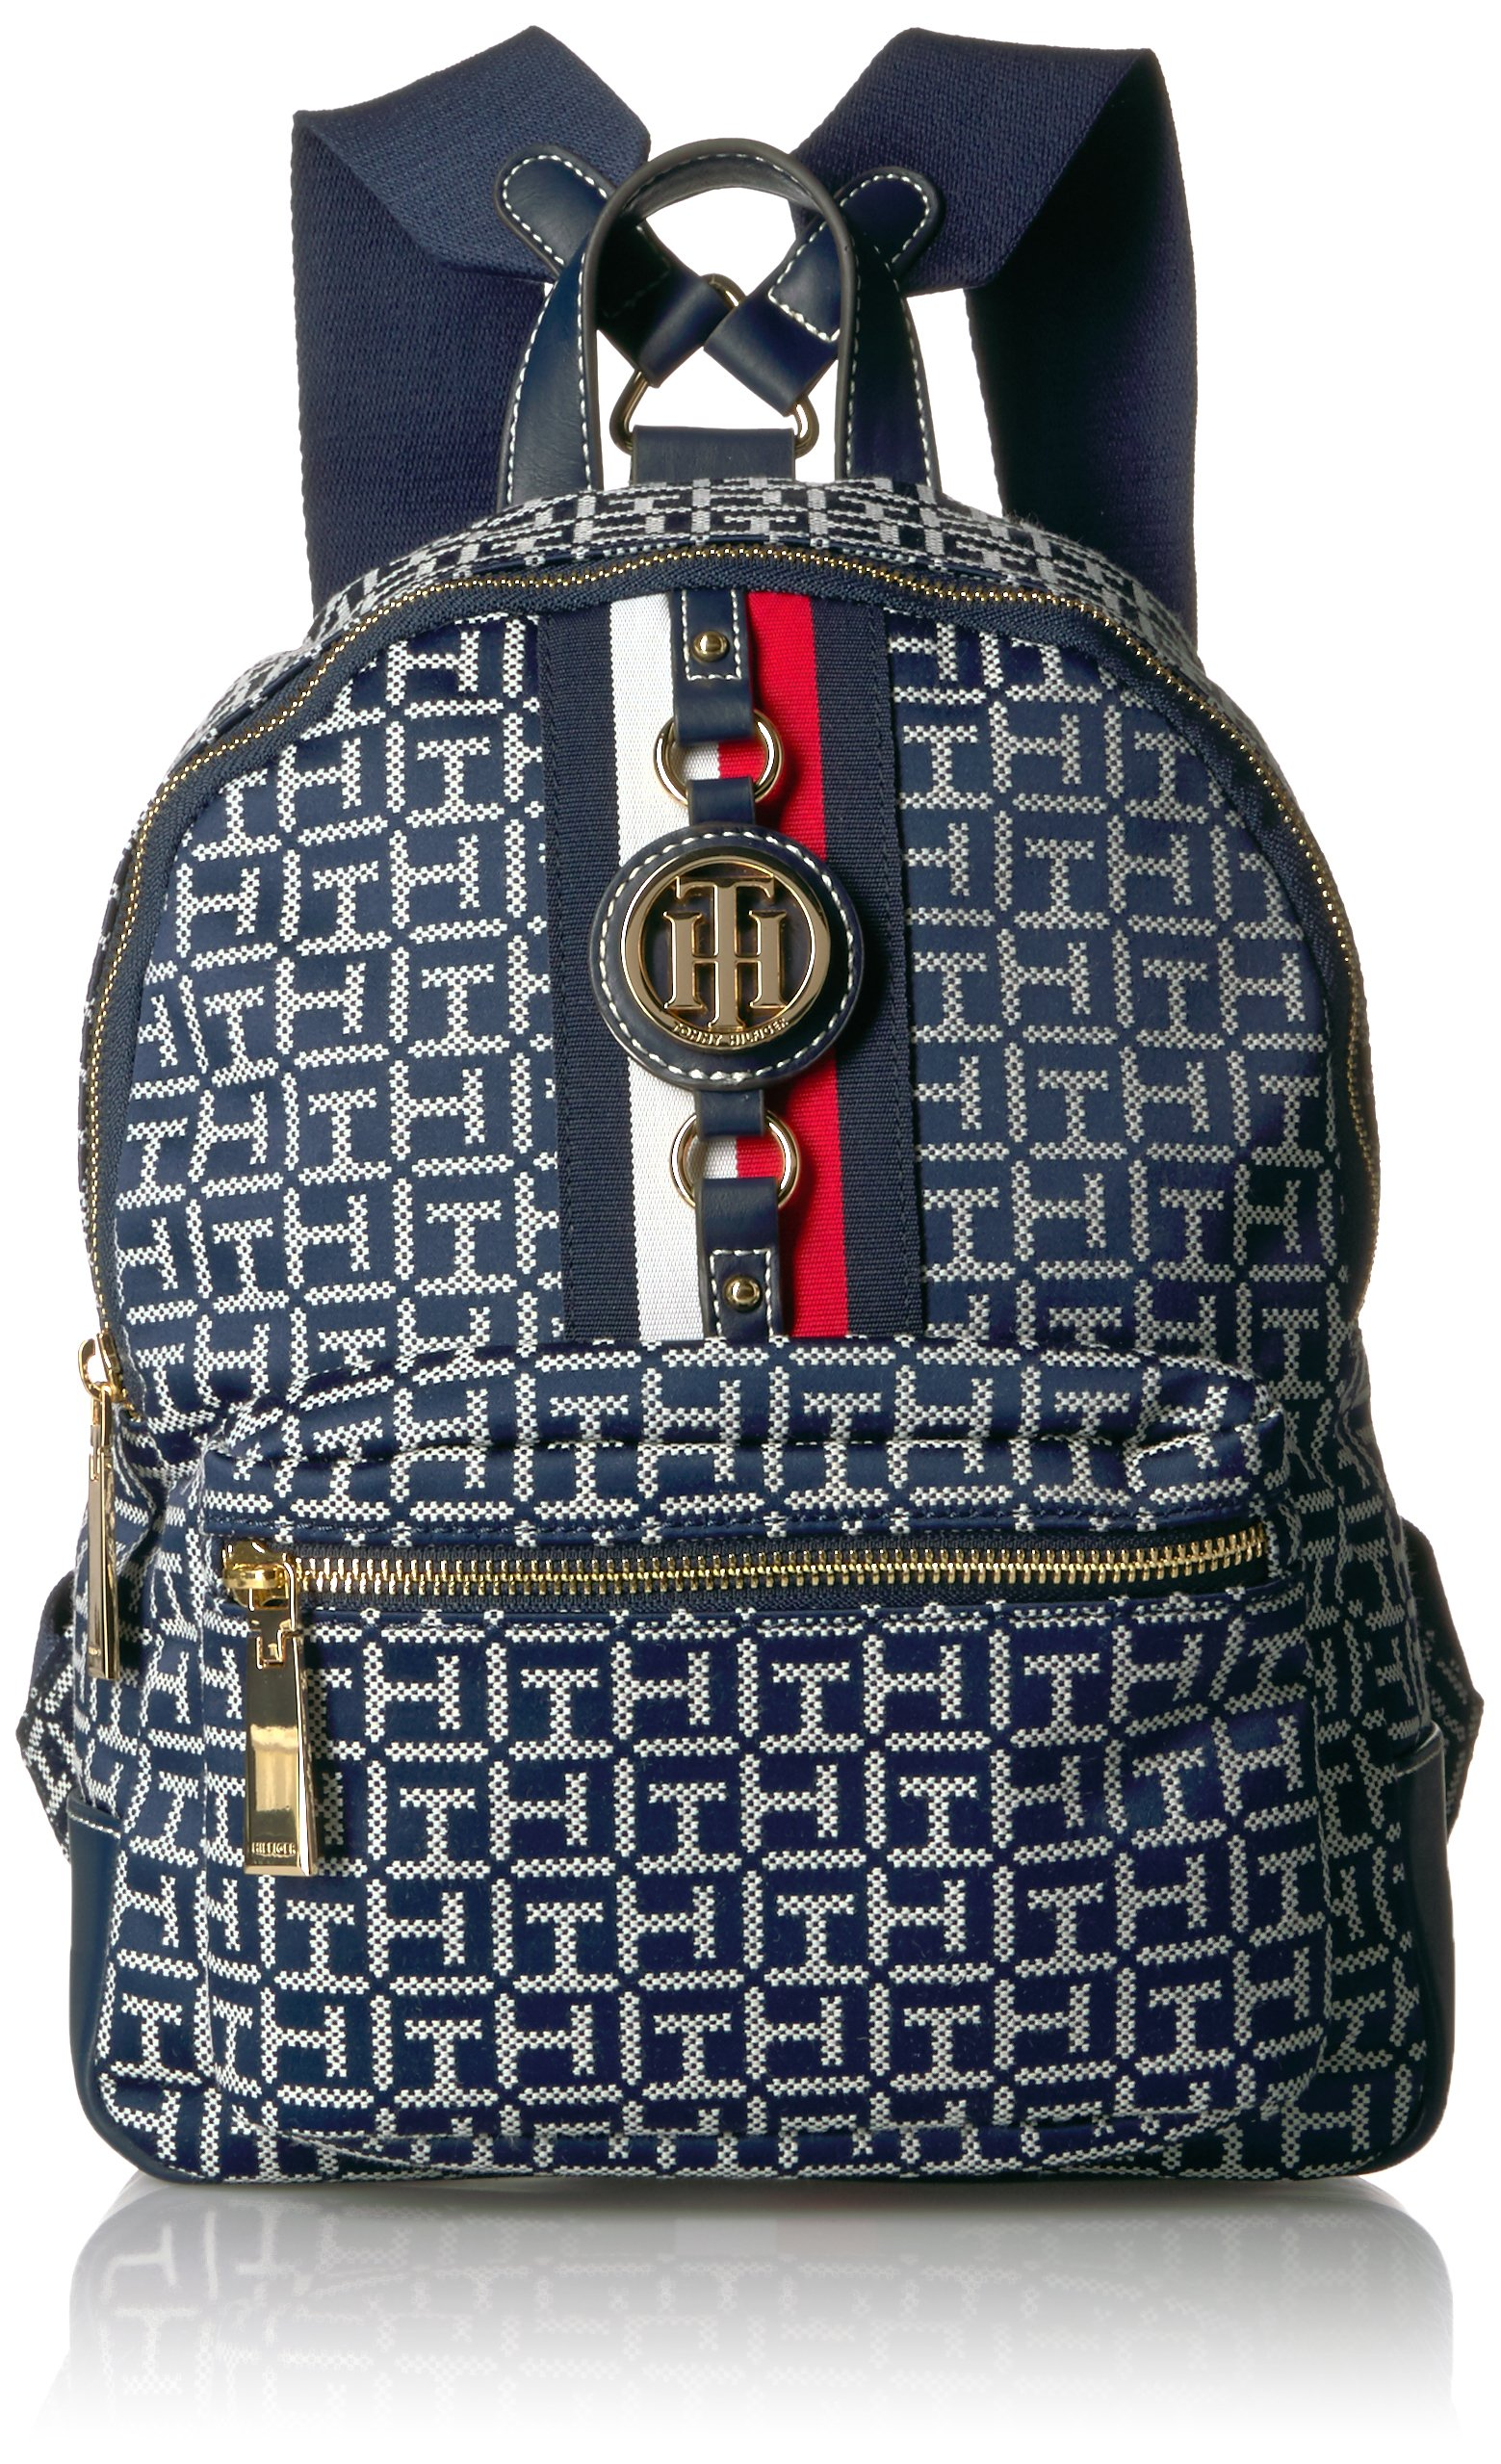 Tommy Hilfiger Women's Jaden Backpack, Navy/White